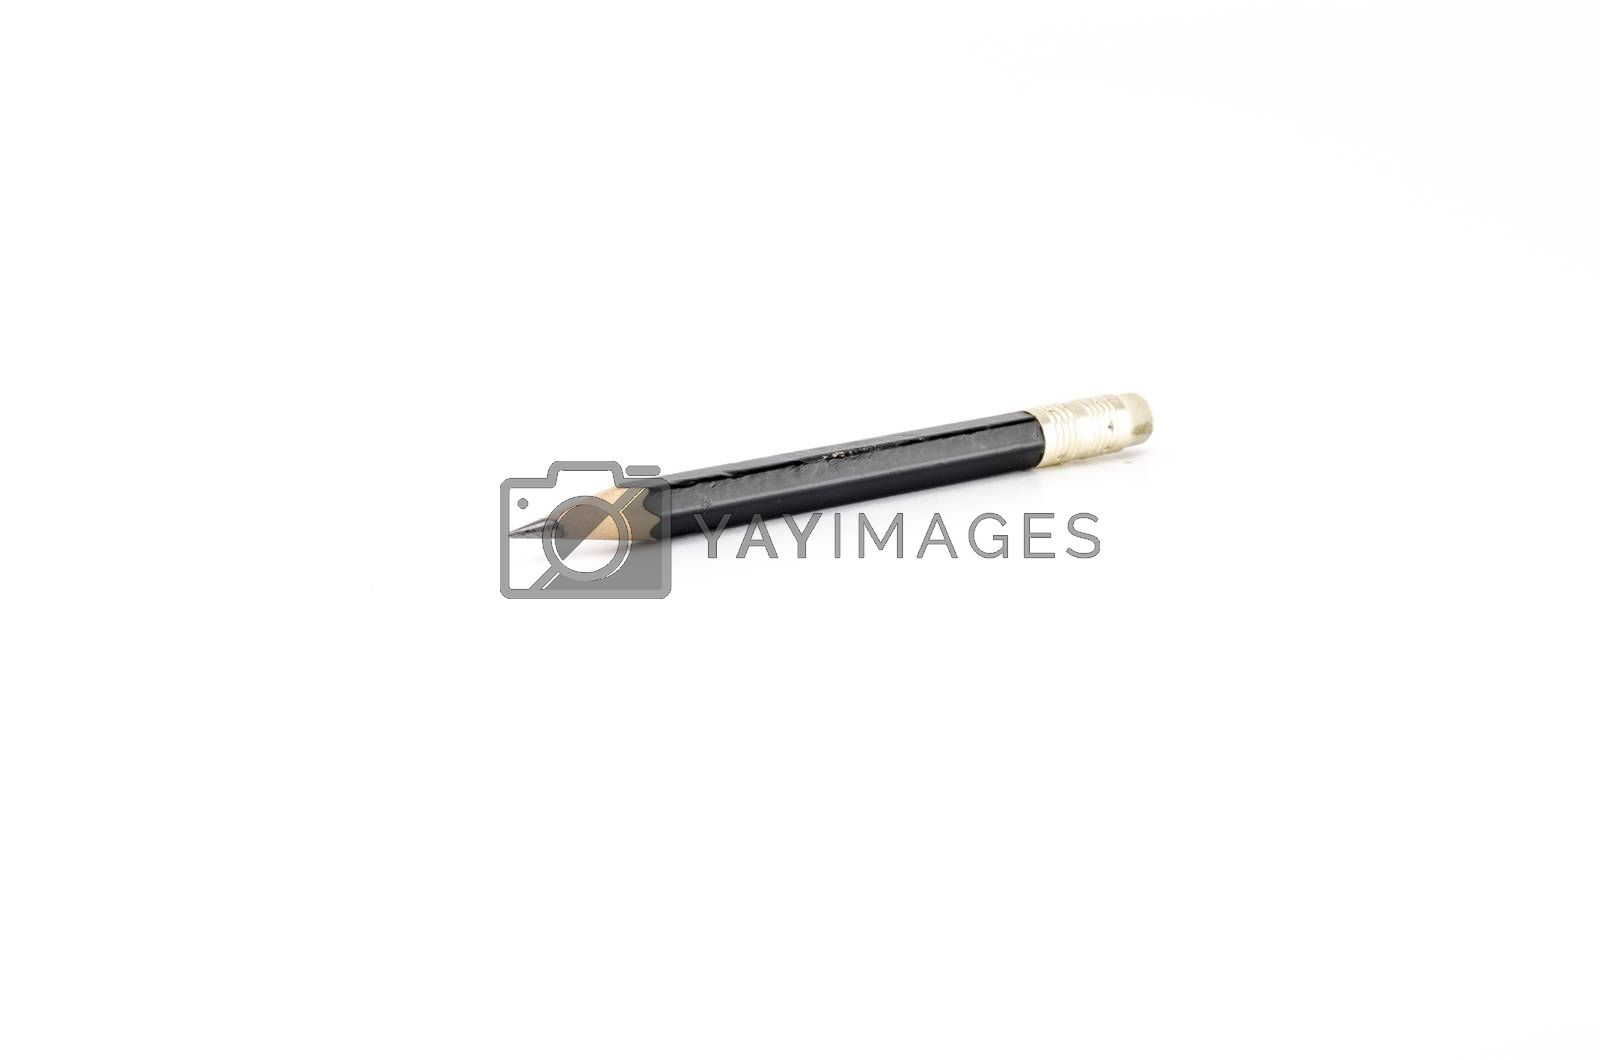 short black pencil isolated on white  by ammza12